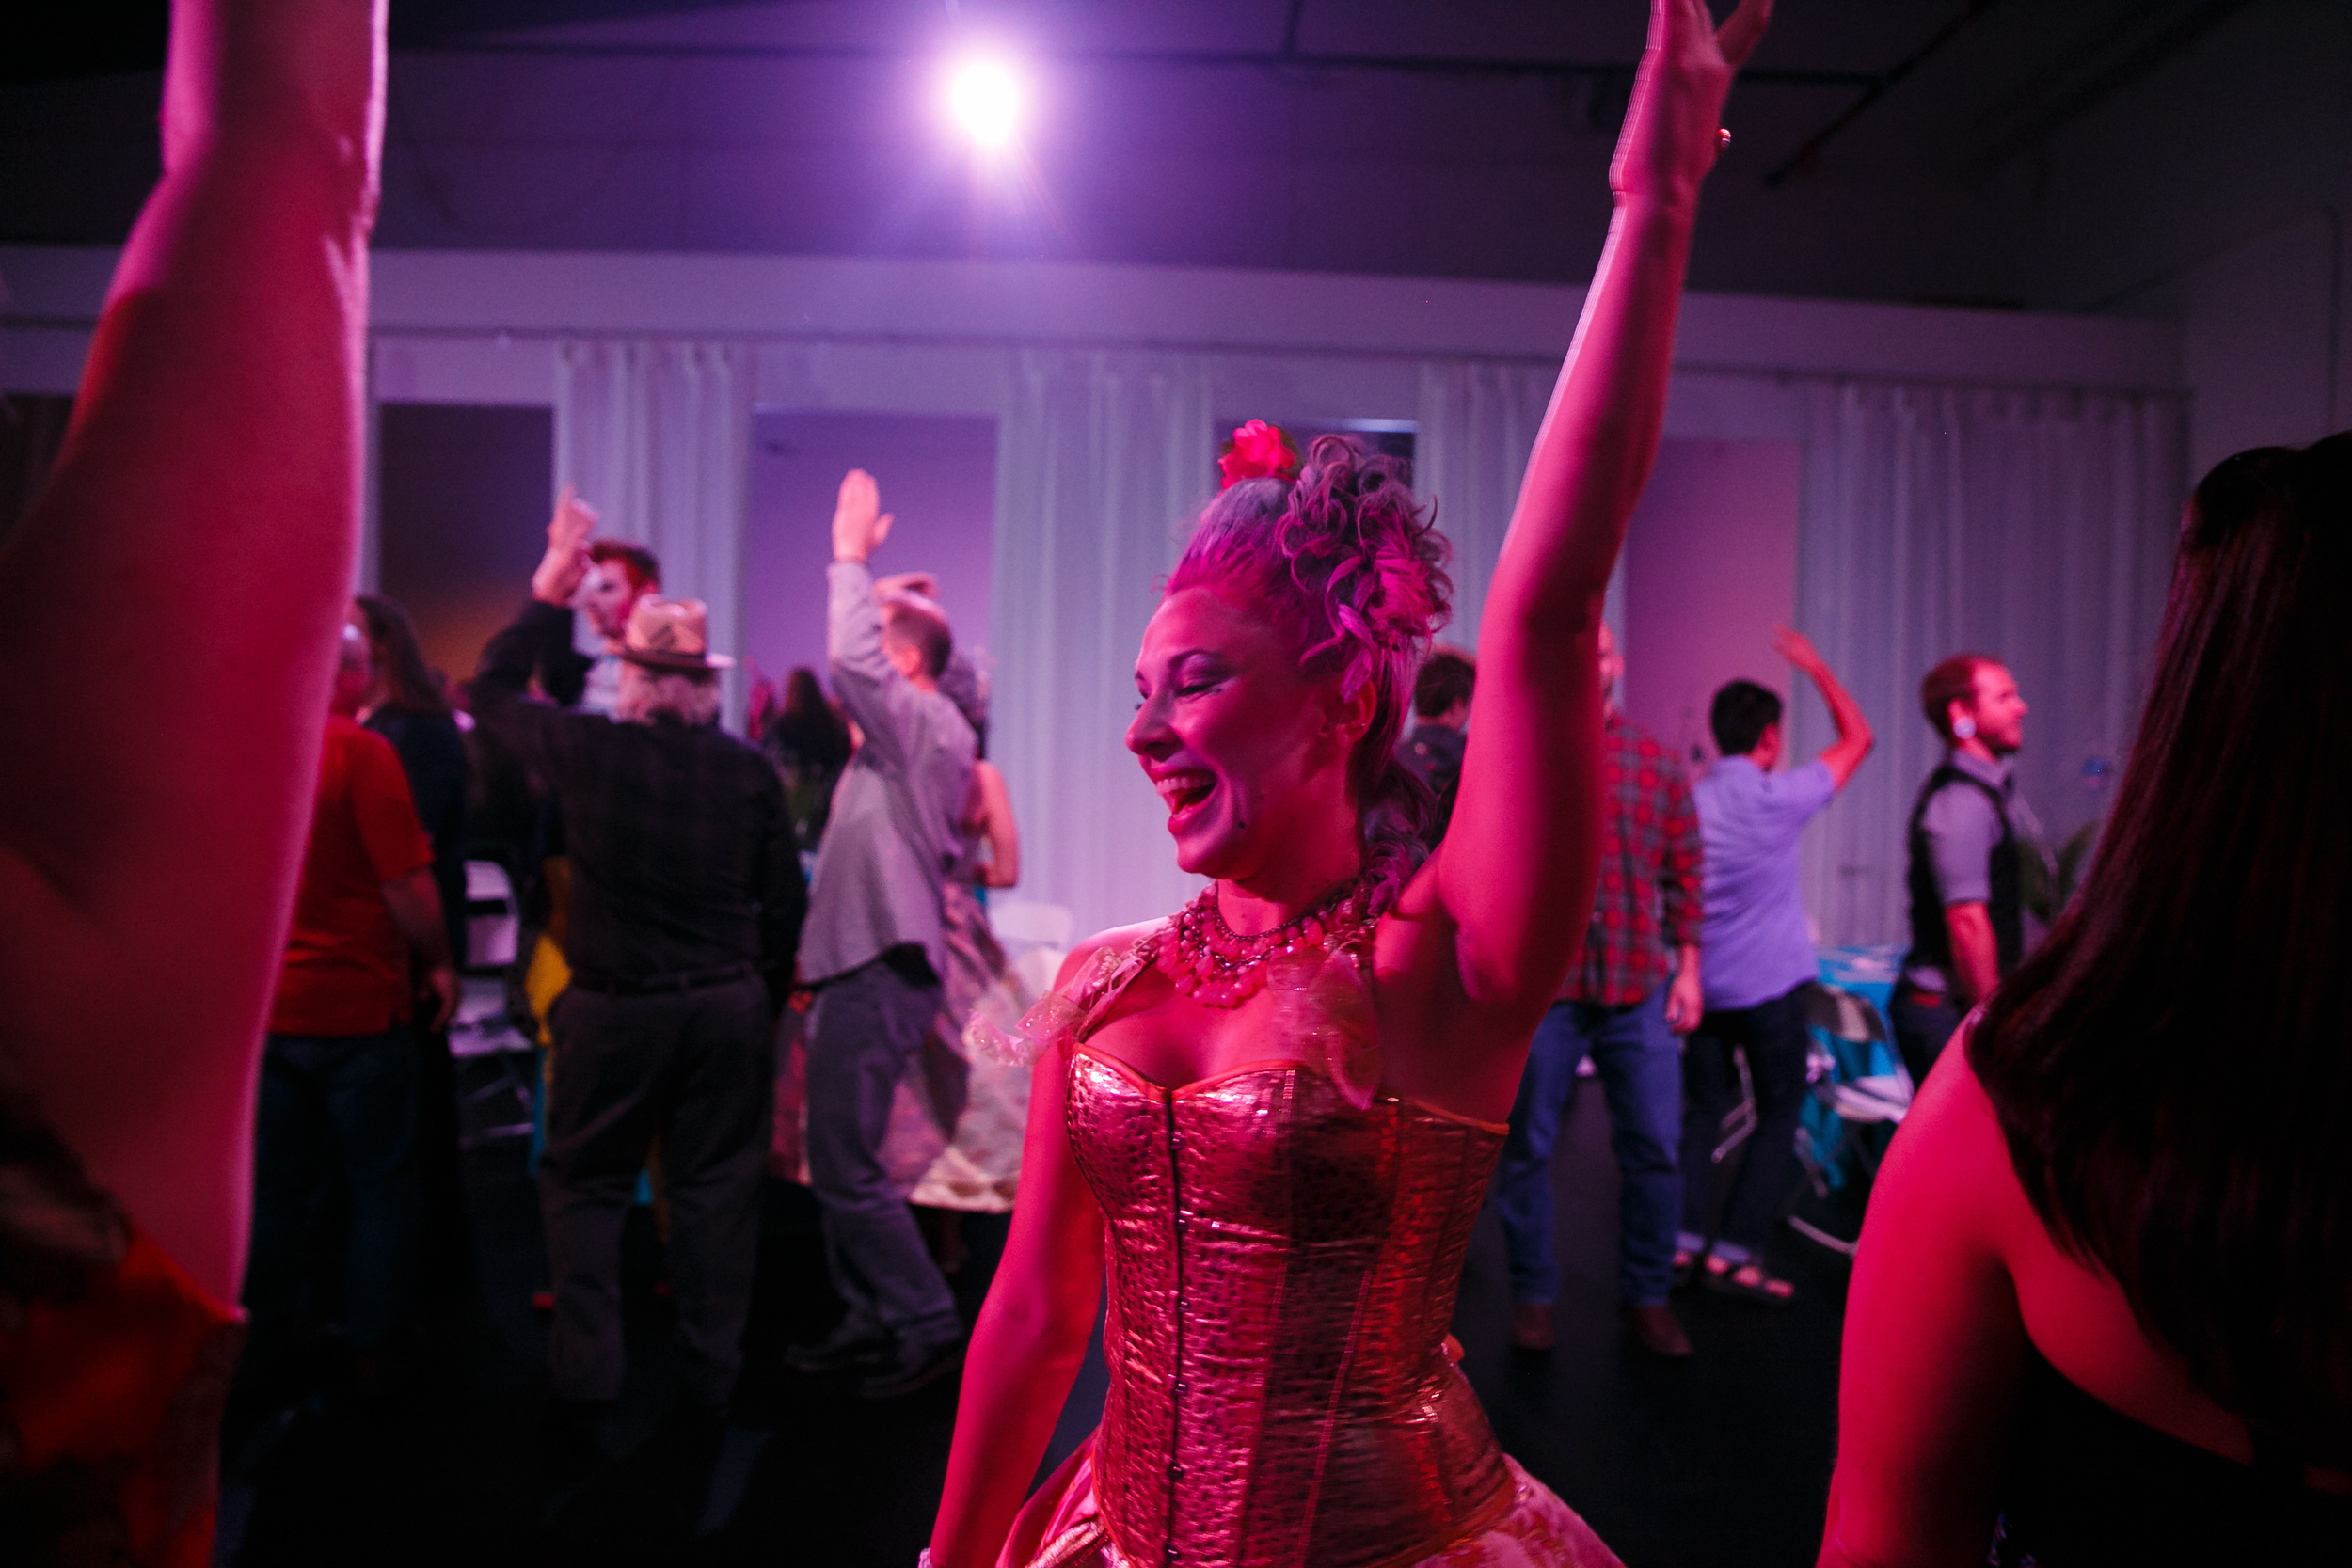 Marie Antoinette-style performer smiles at immersive dance theater show in Austin